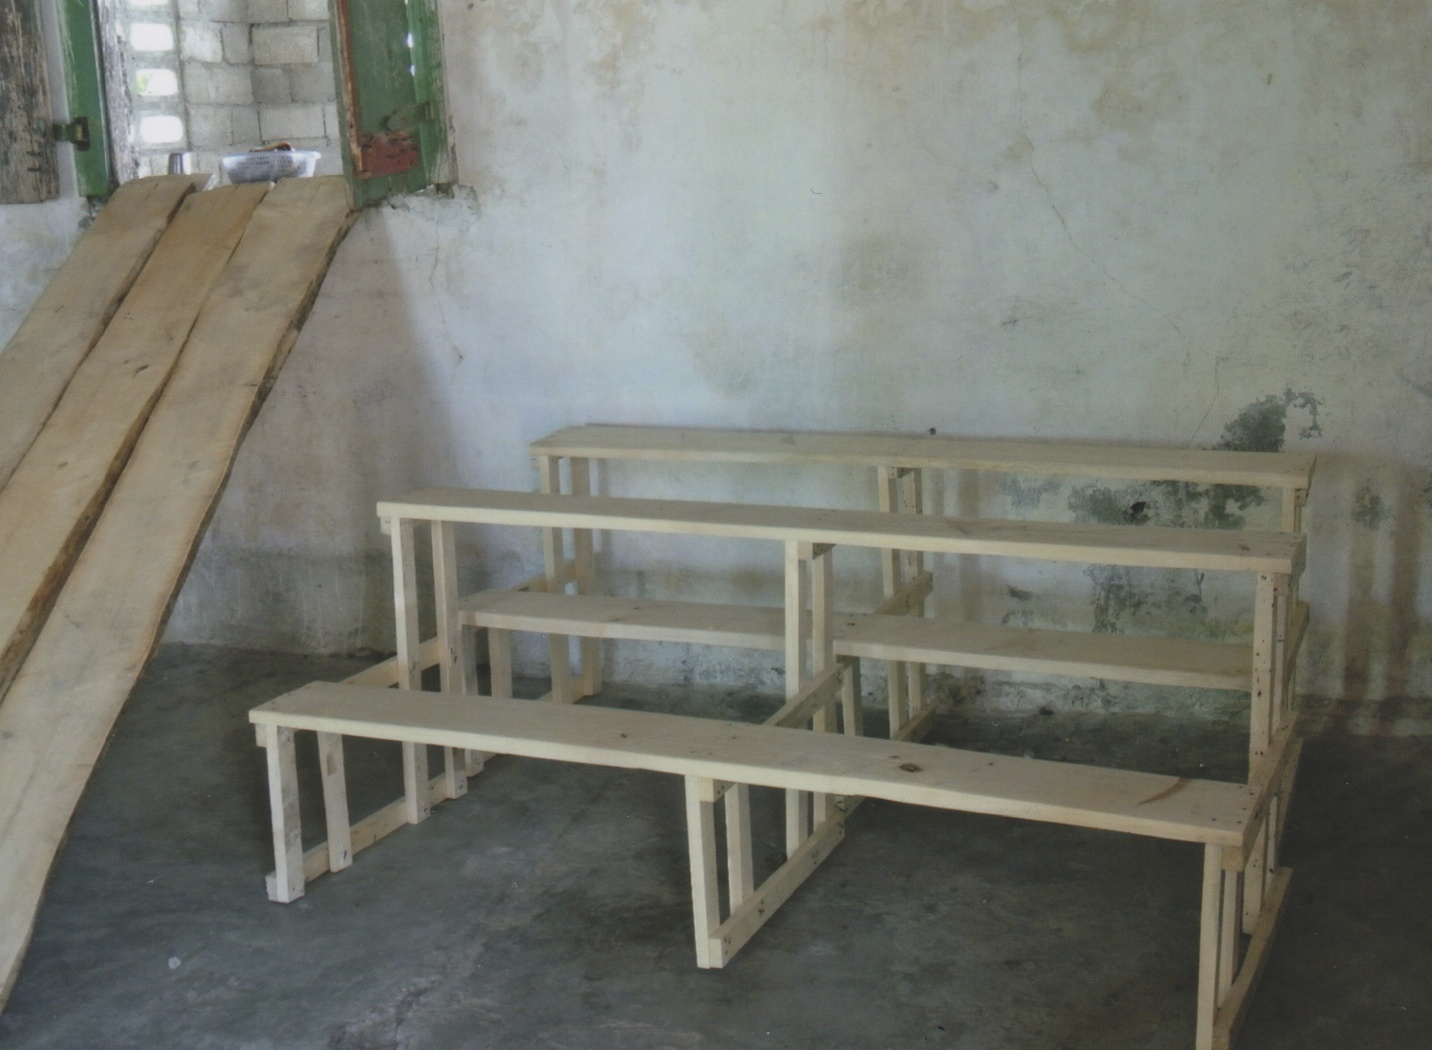 The new benches for the school